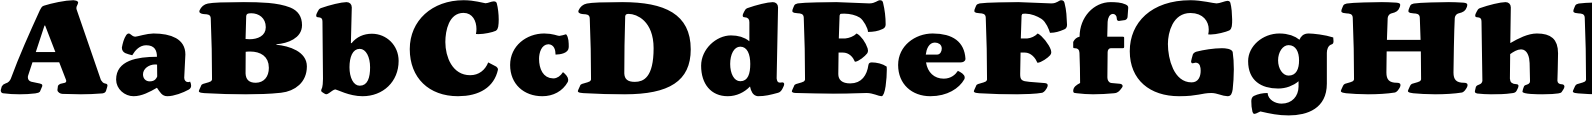 Trybuna Bold Font